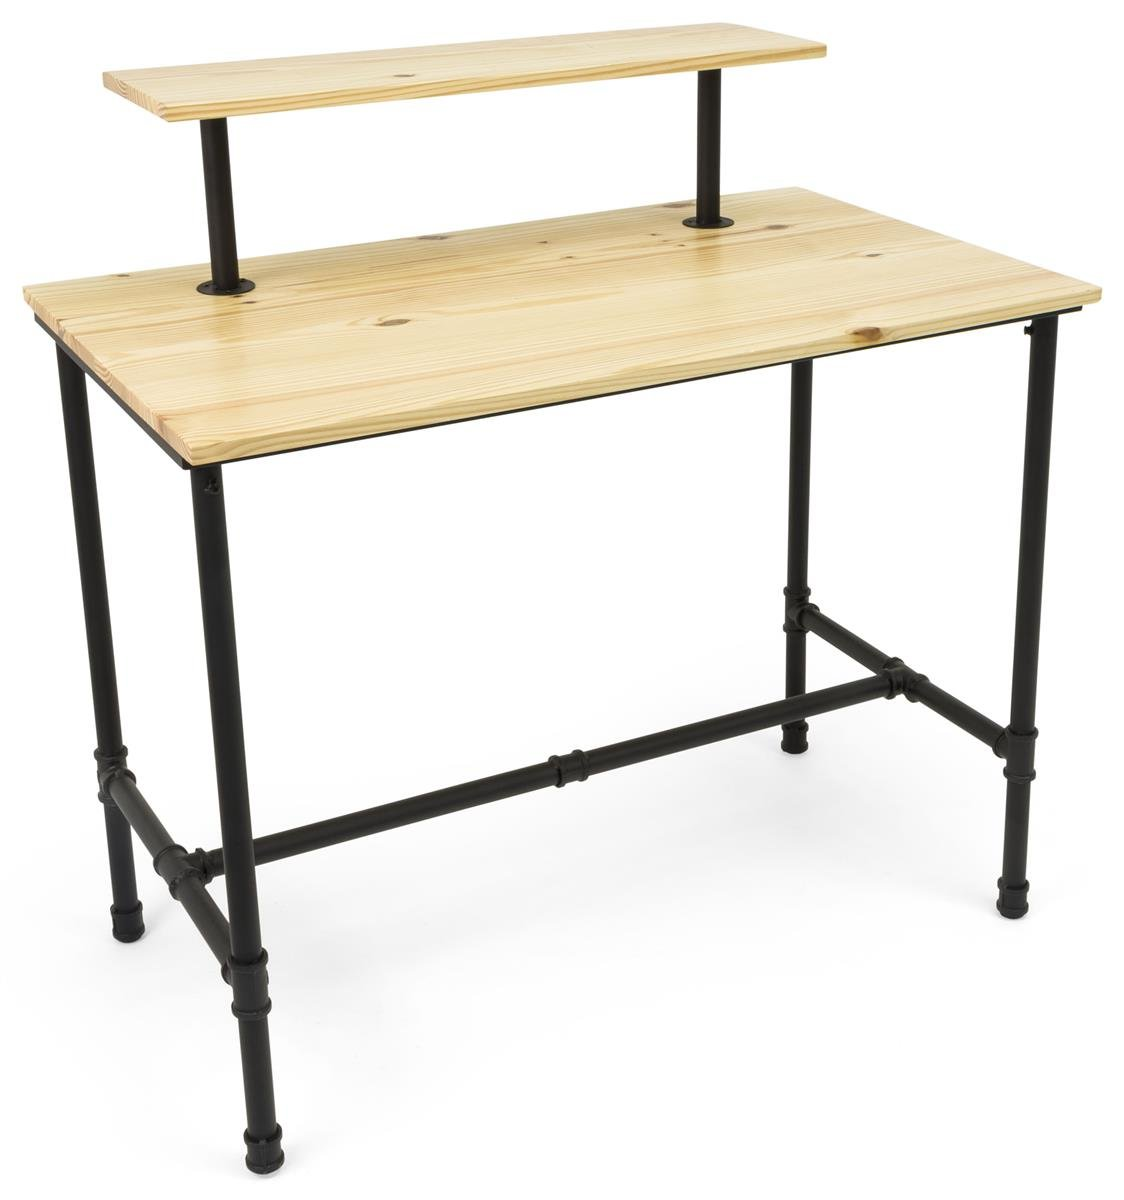 Displays2go, Large Pipe Display Table, Metal and Pine Wood Construction - Natural Finish, Black Hardware (PPLNNSTLRG)